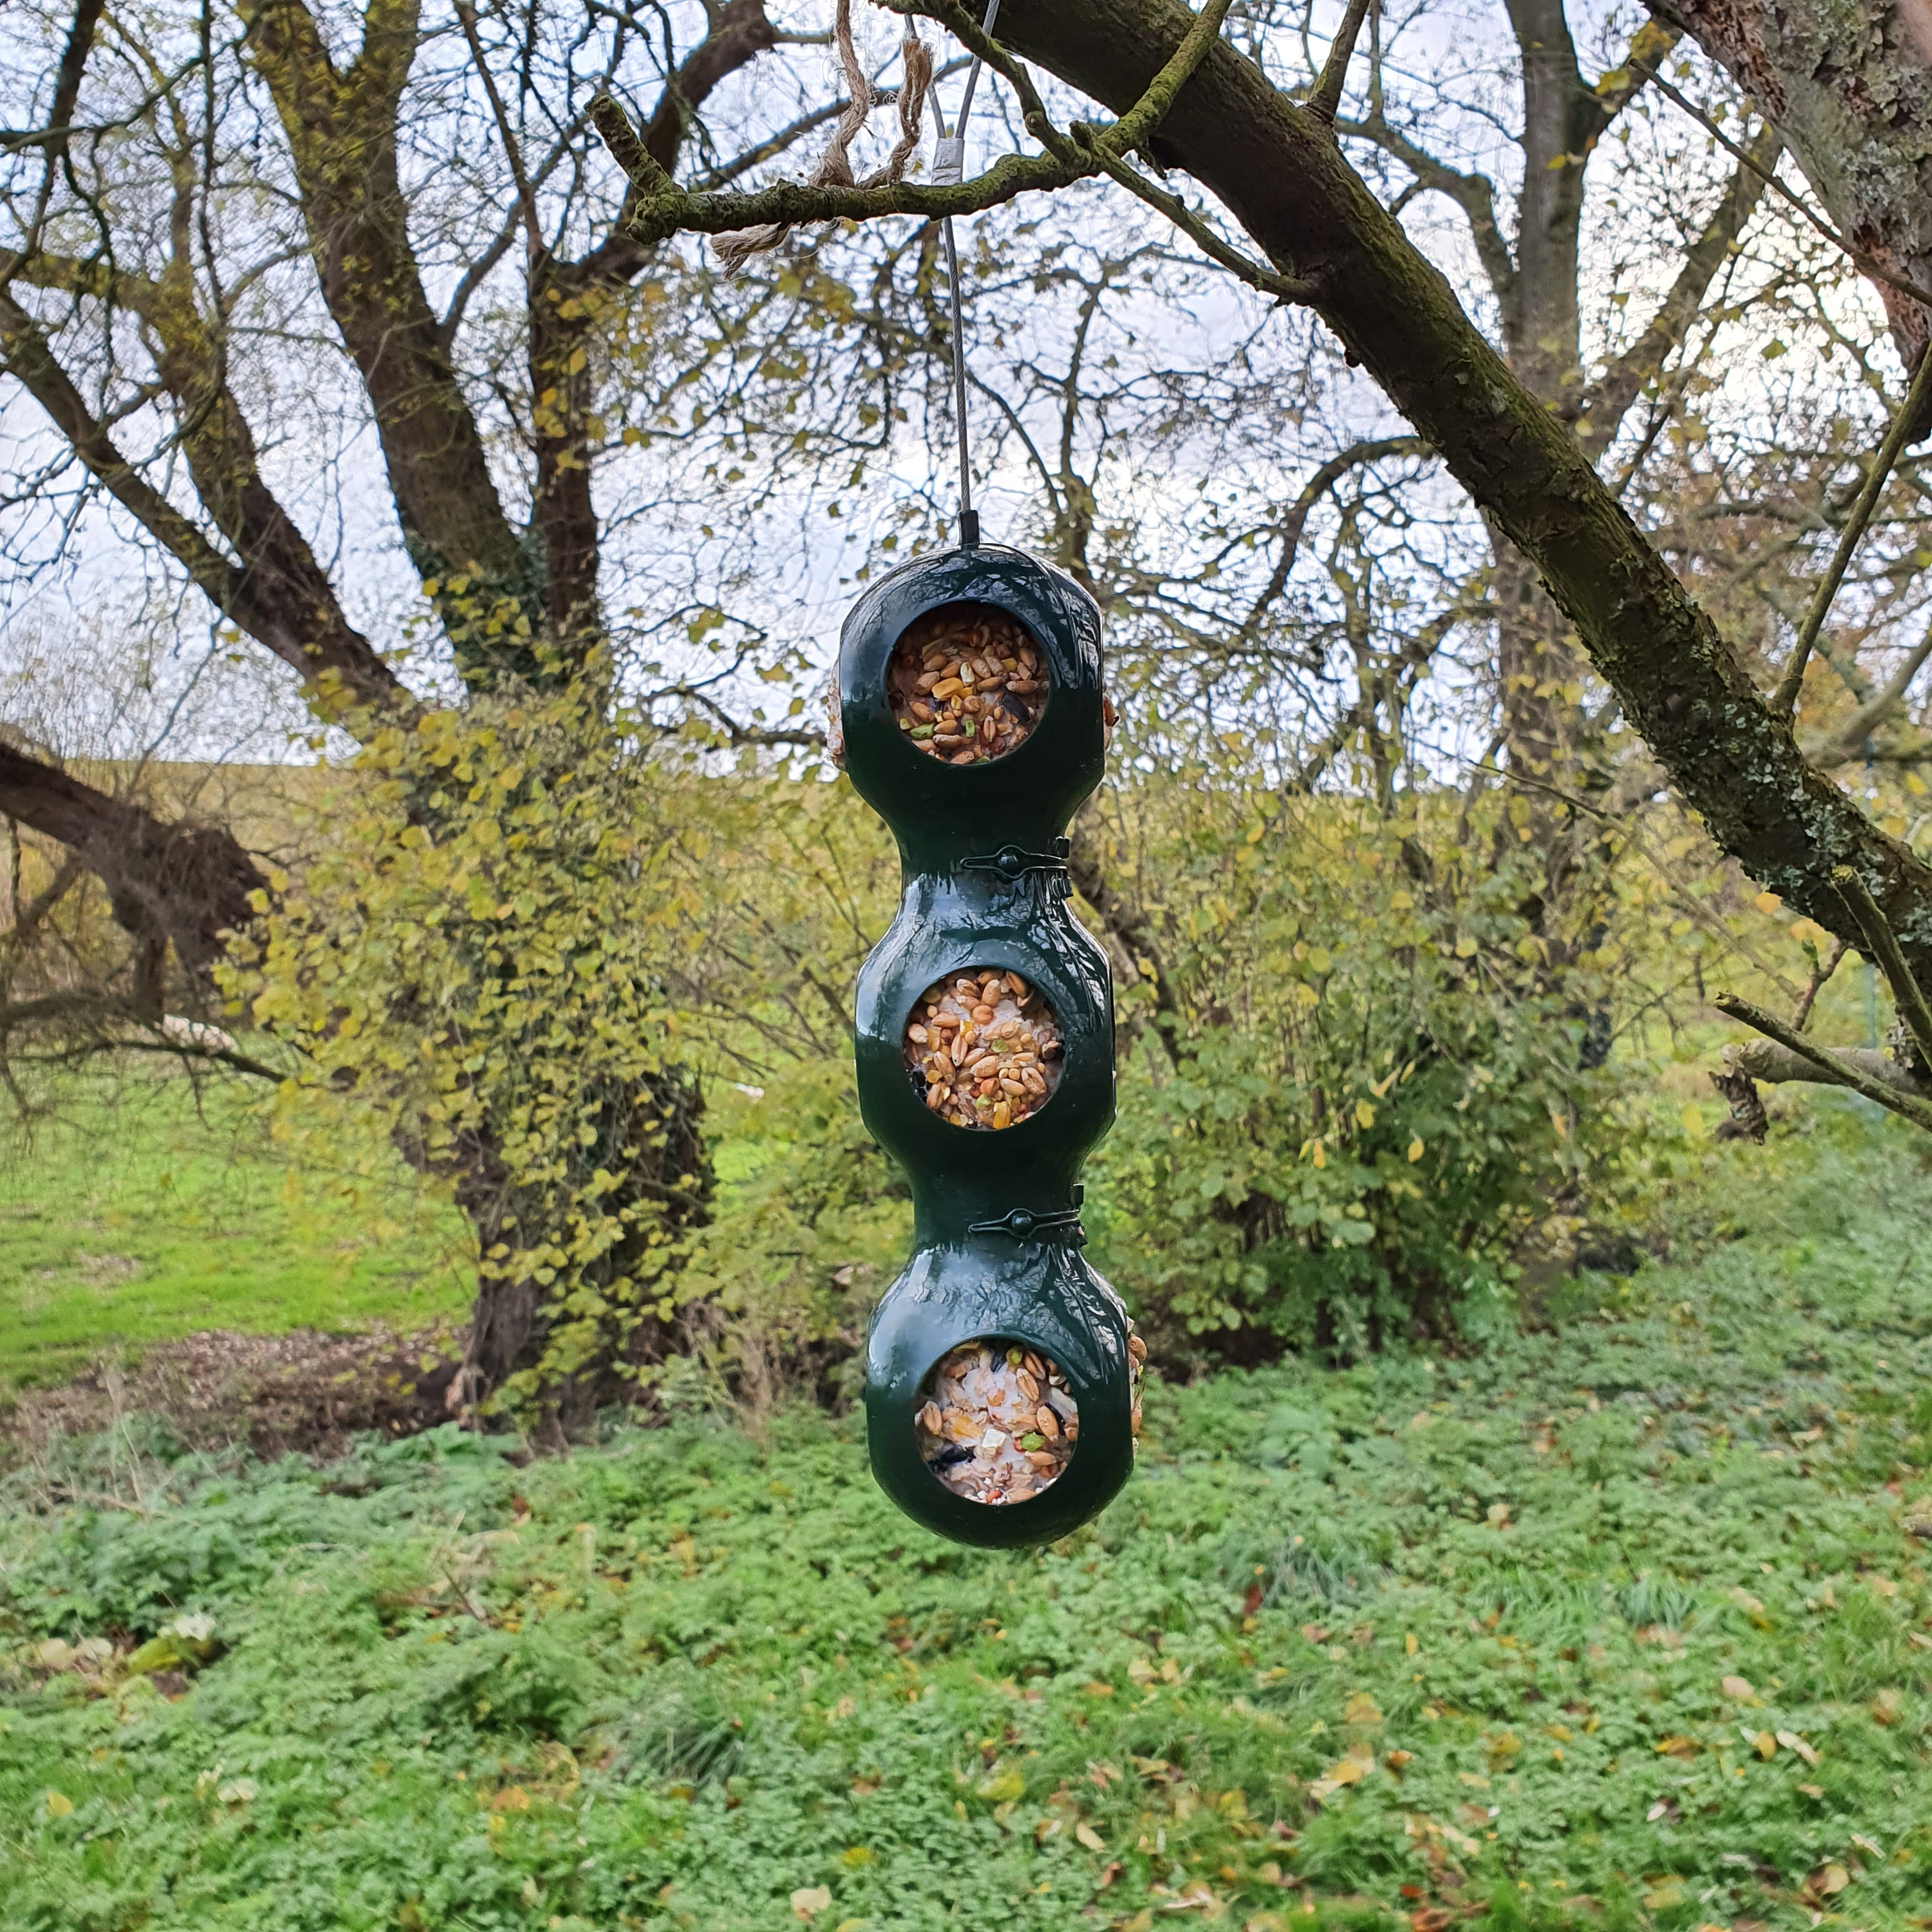 Finished seed cakes in a bird feeder